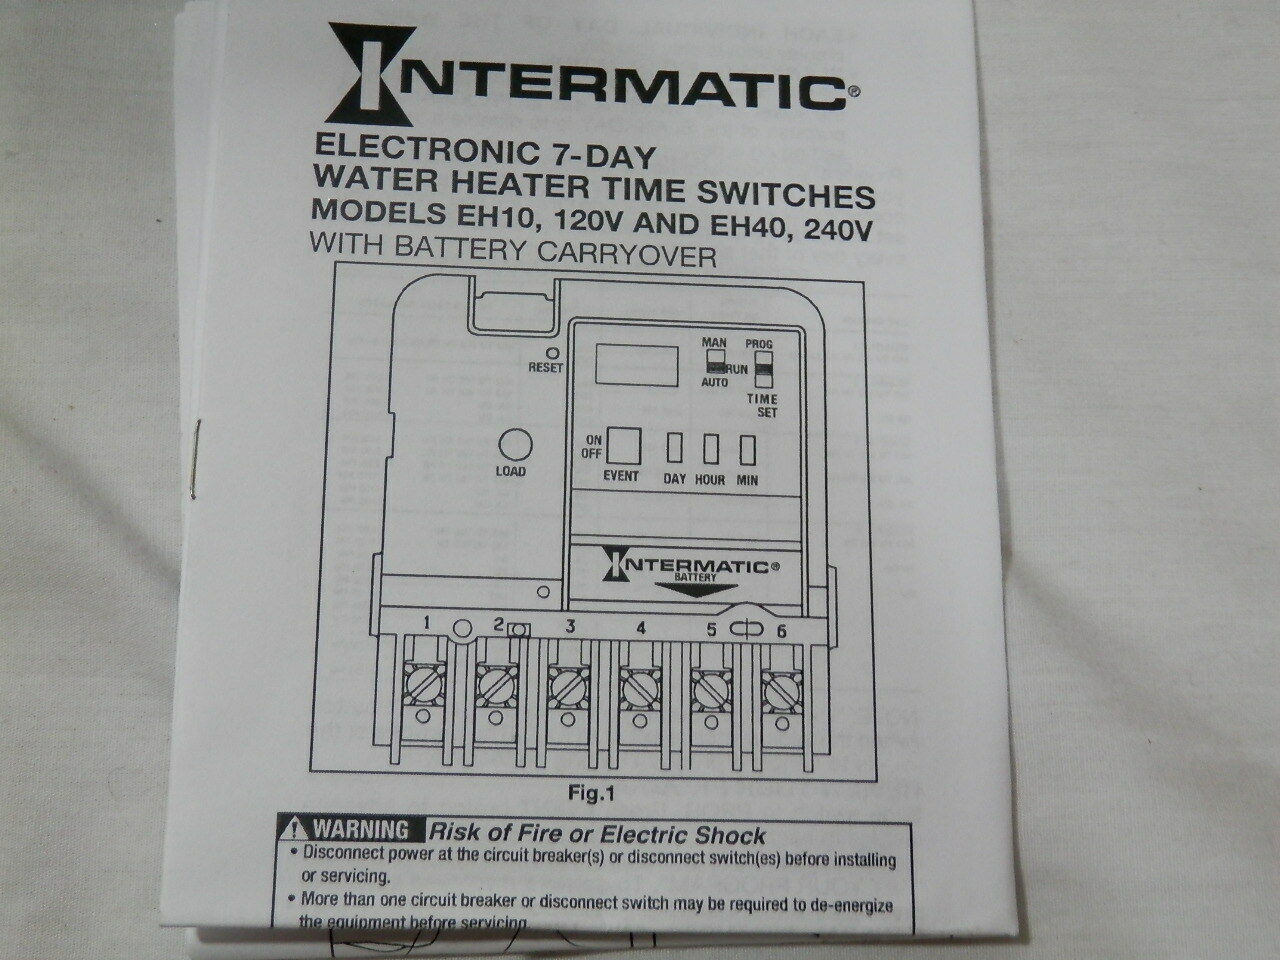 Wiring Diagram Hotsy Model 40   Fusebox and Wiring Diagram device ...